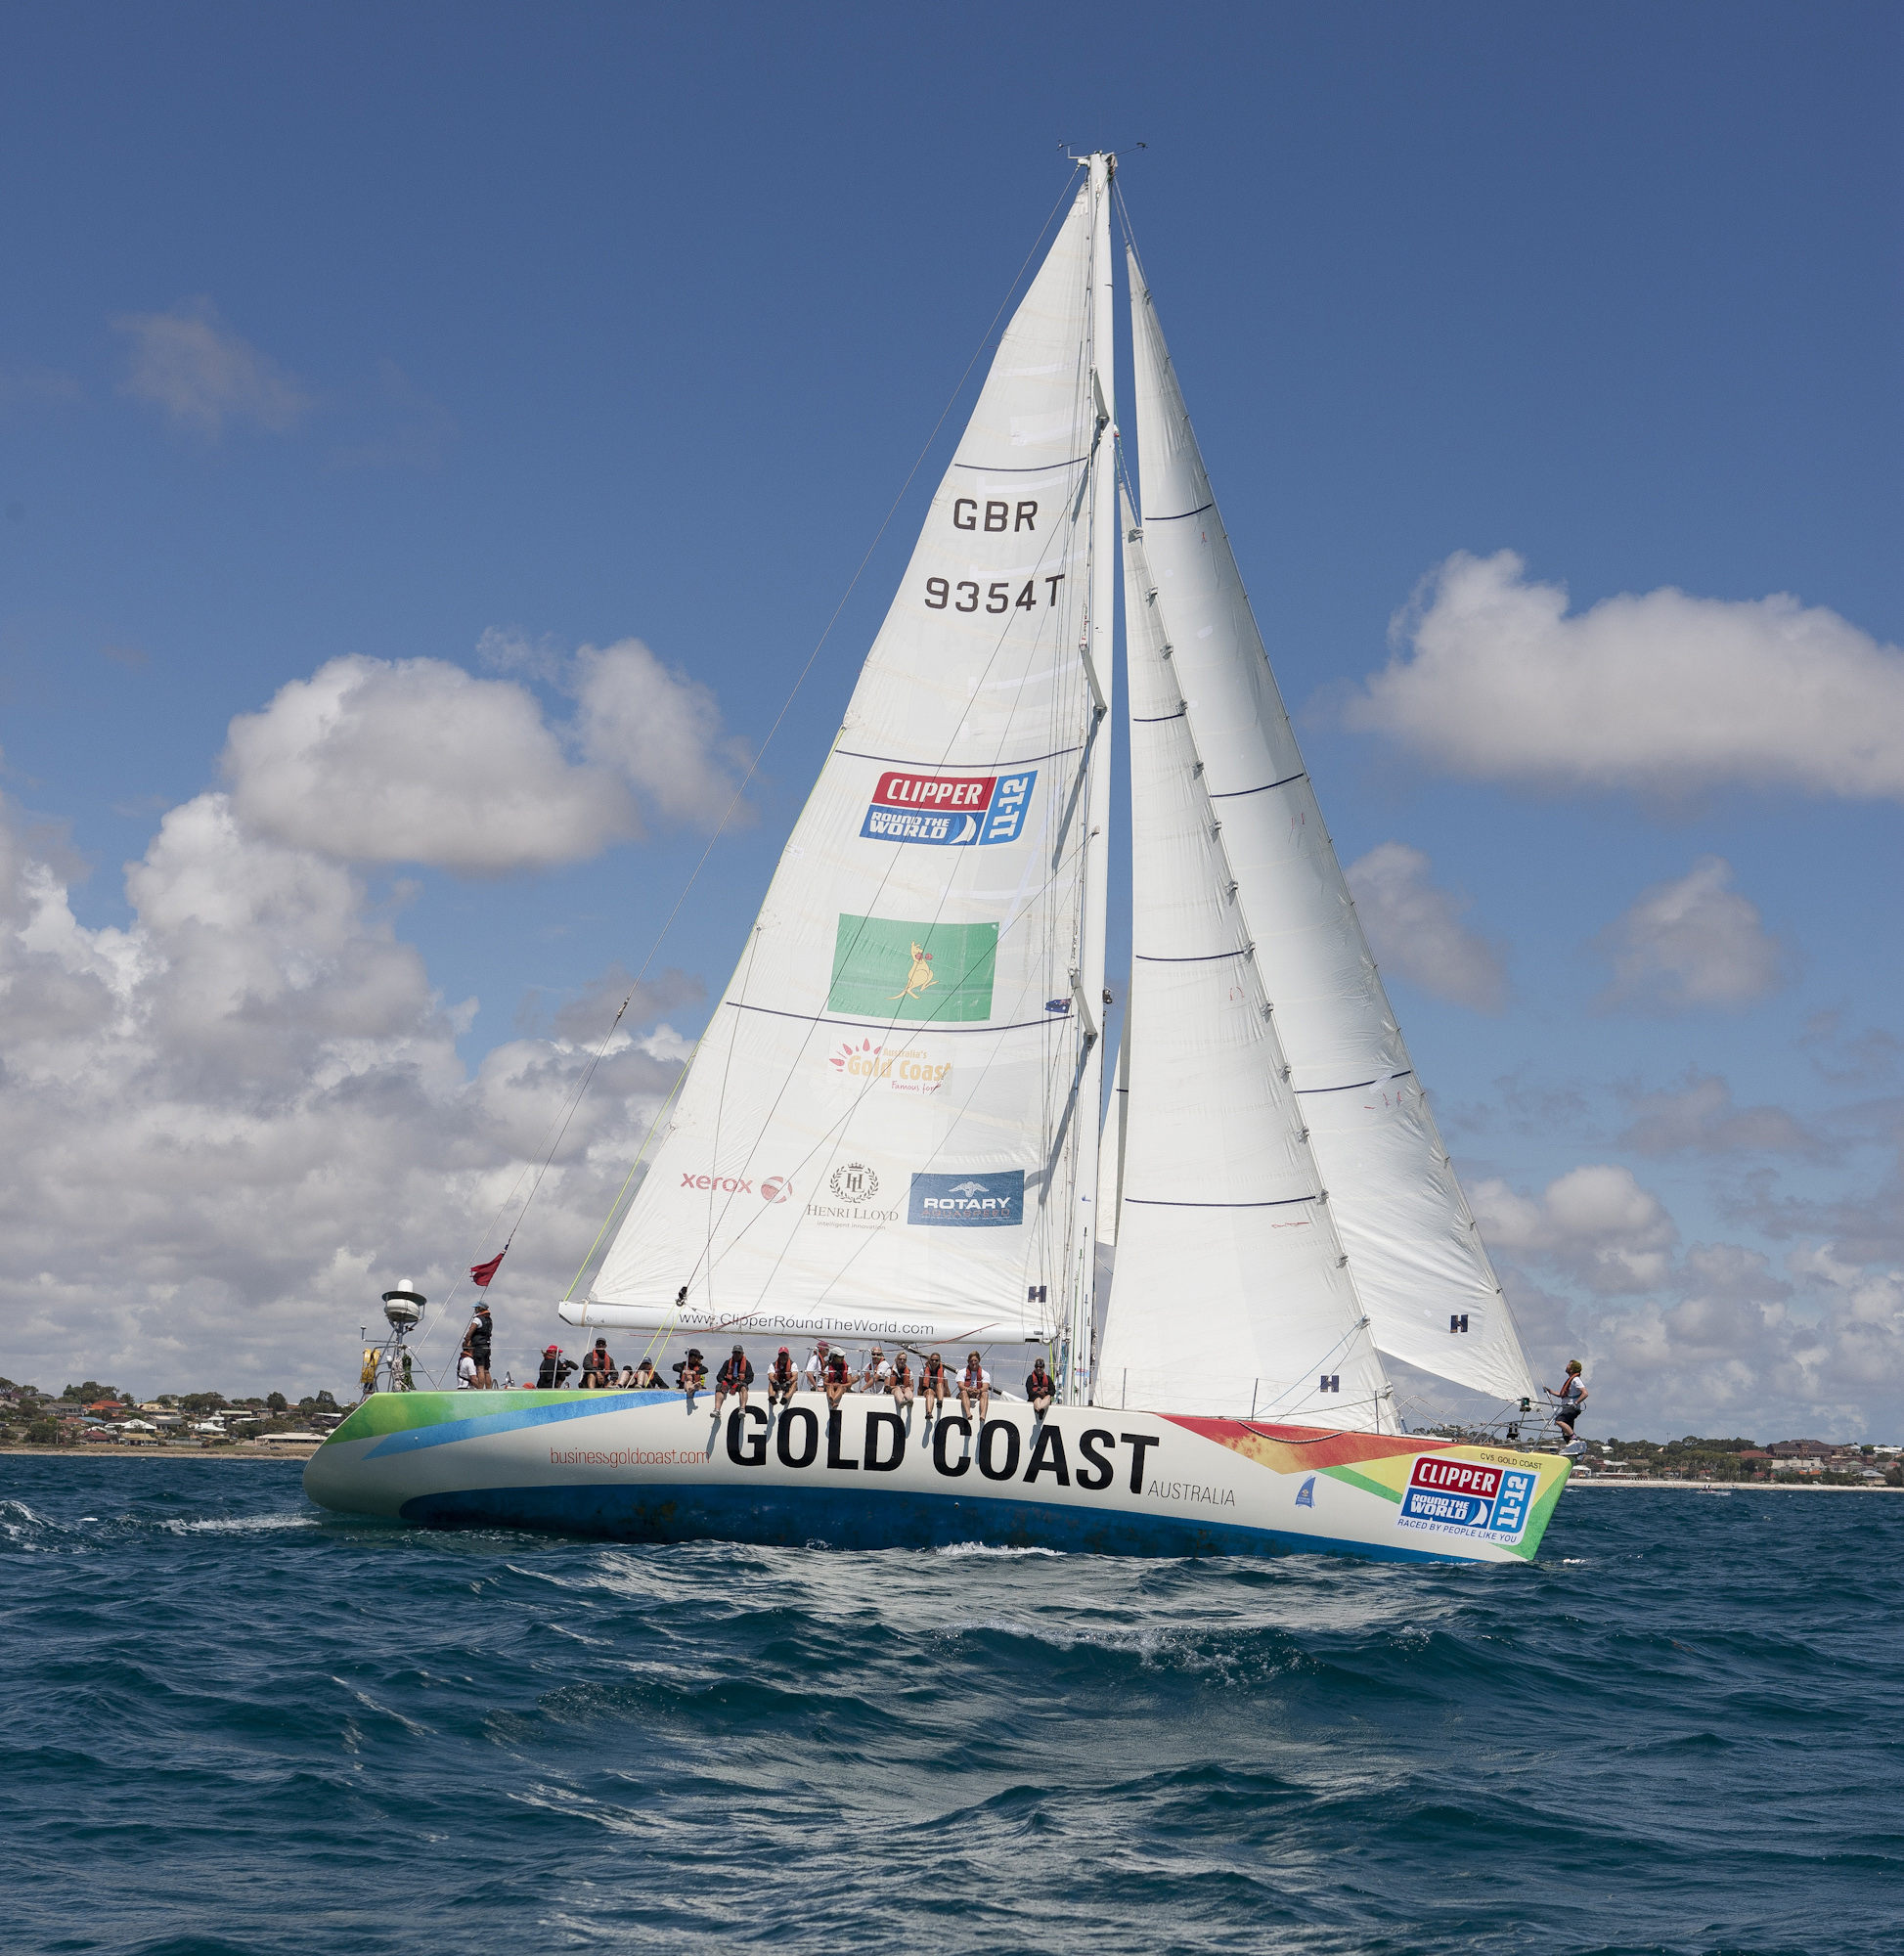 Gold Coast Australia at the start of Race 5 from Geraldton, Western Australia to Tauranga, NZ, in the Clipper 11-12 Round the World Yacht Race